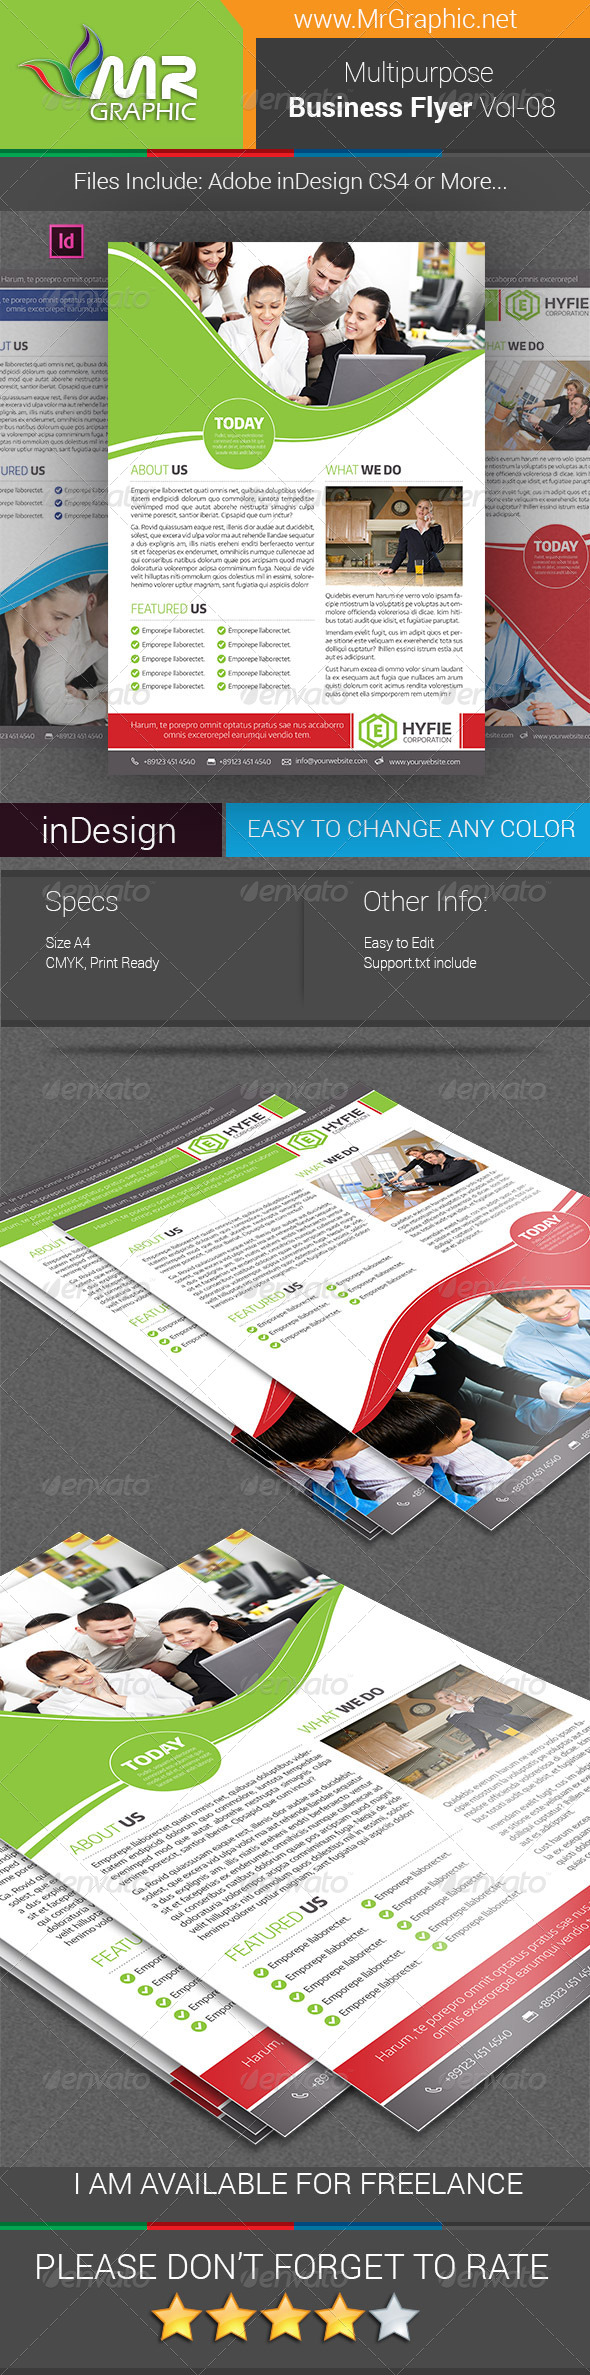 GraphicRiver Multipurpose Business Flyer Vol-08 7720616